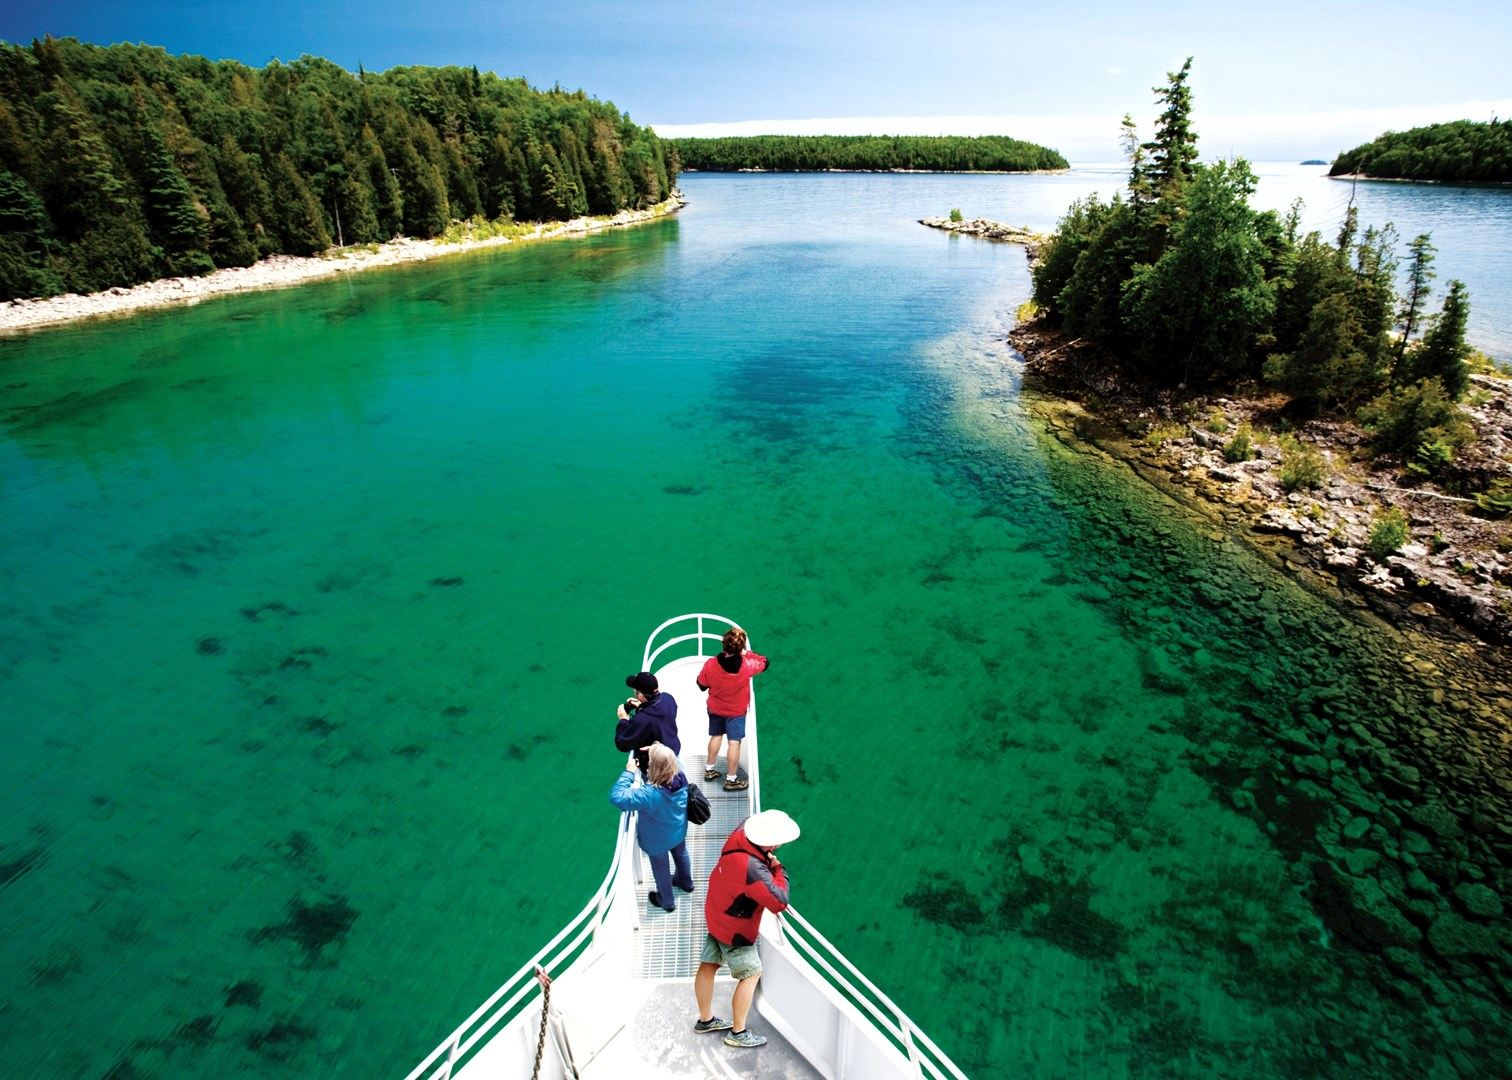 Bruce Peninsula & Flowerpot Island, July 13th & Aug. 10th, 2019